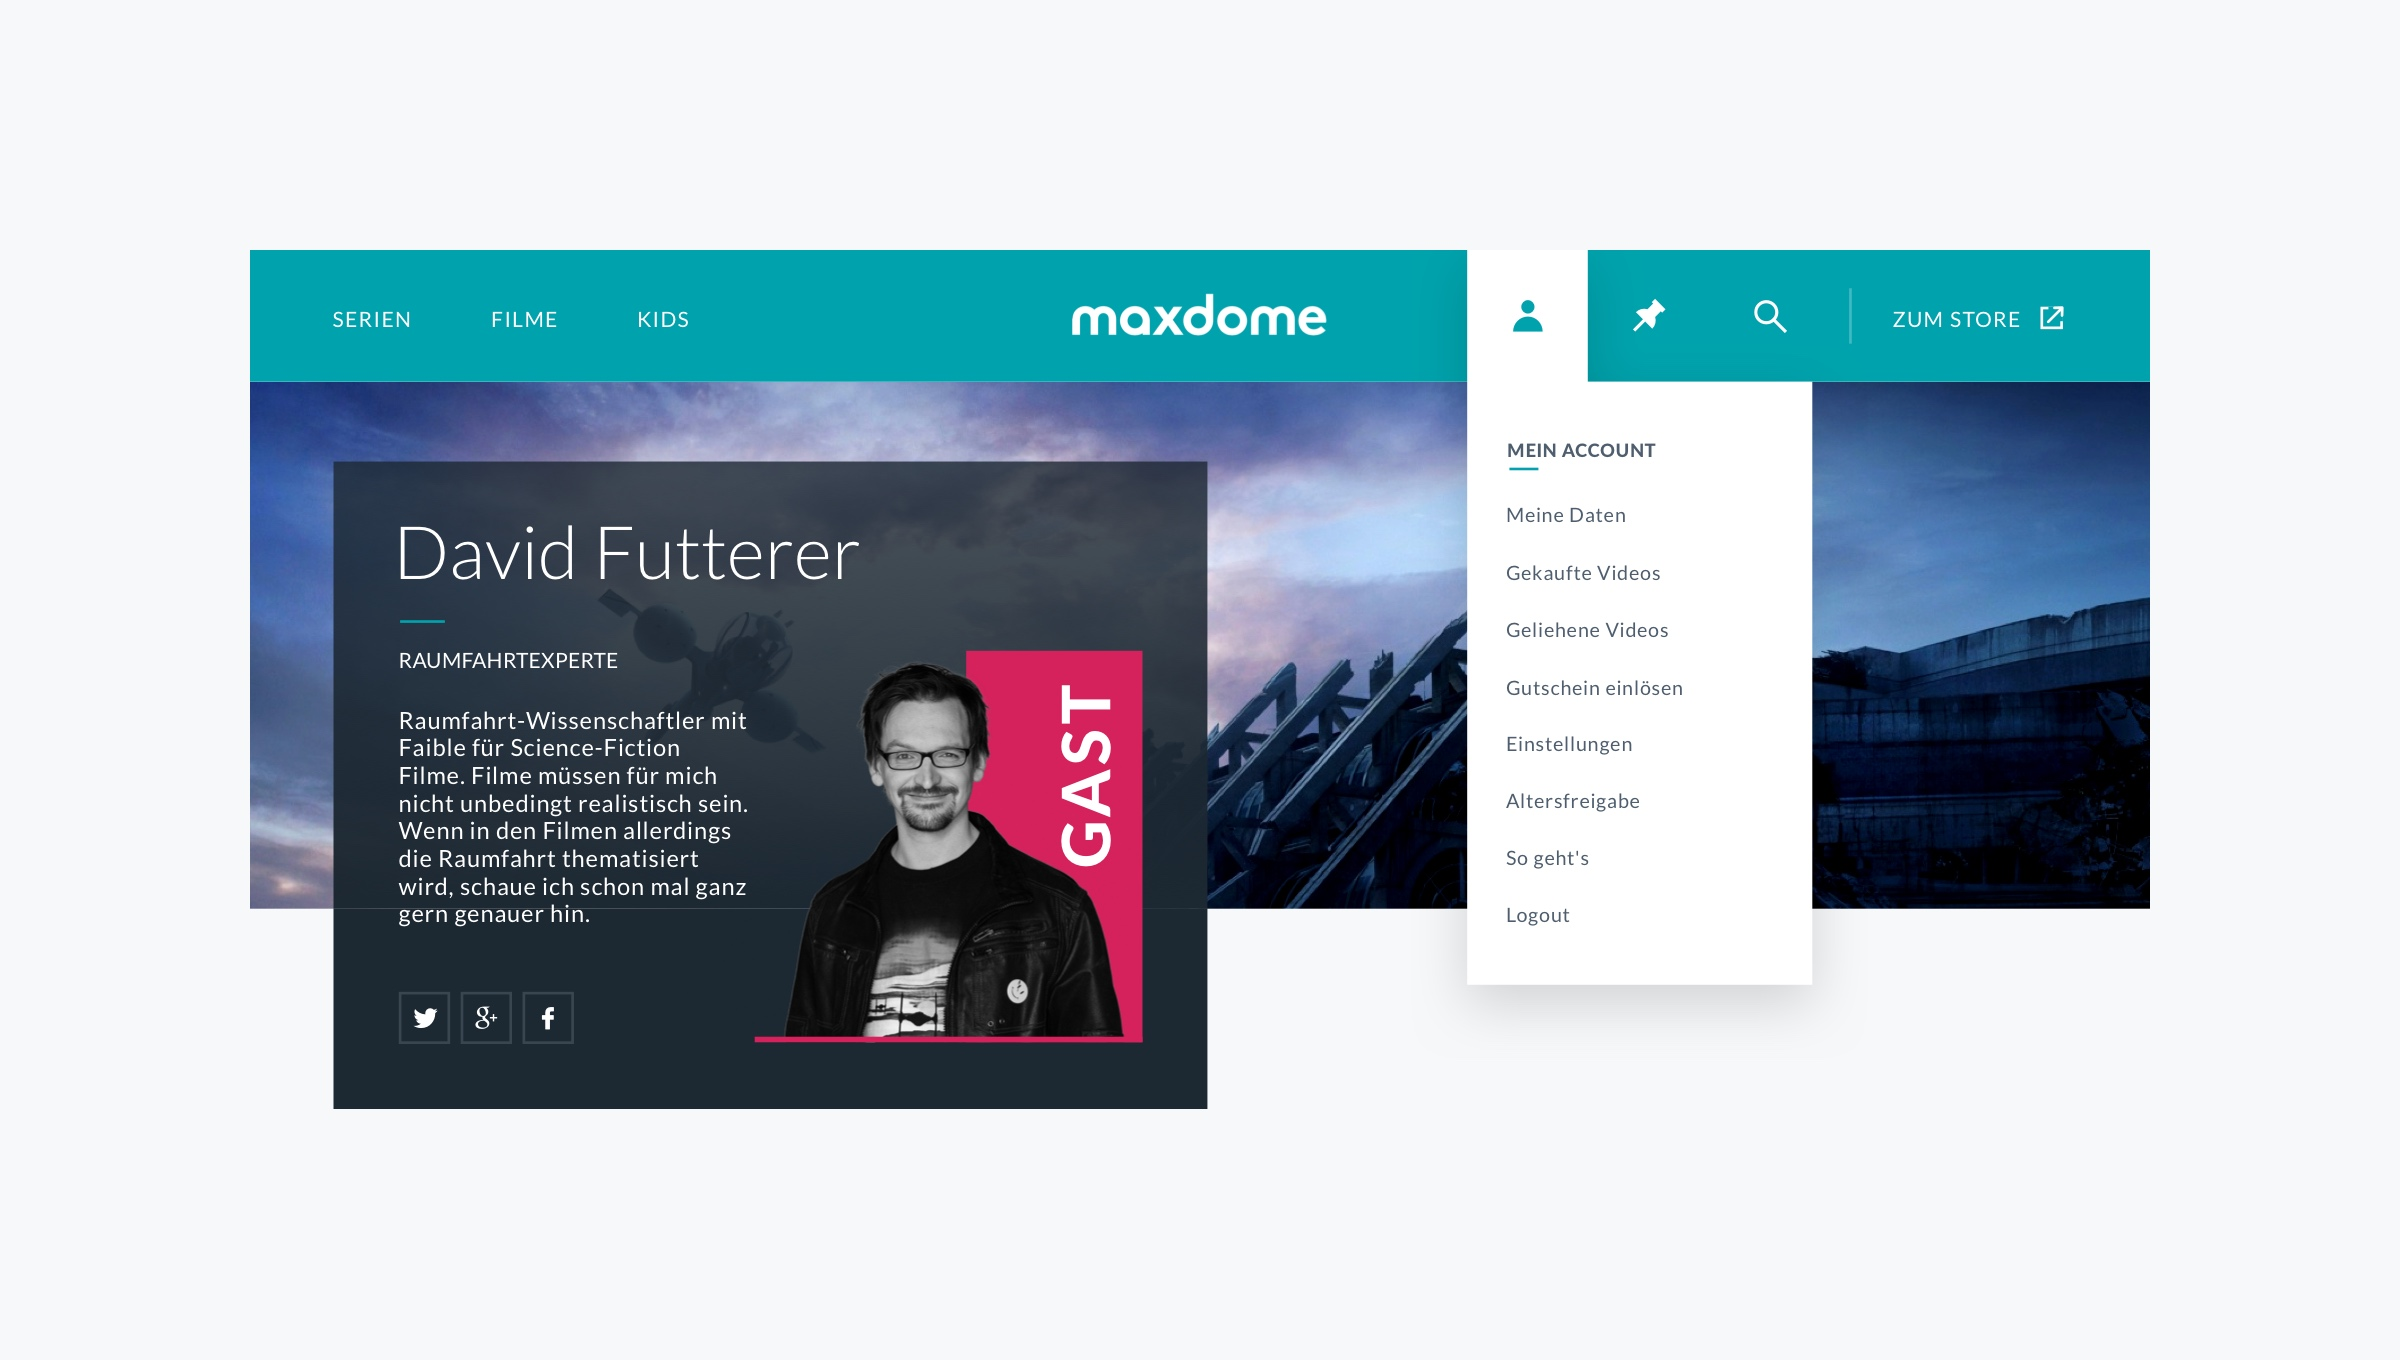 maxdome - Simplicity in navigation